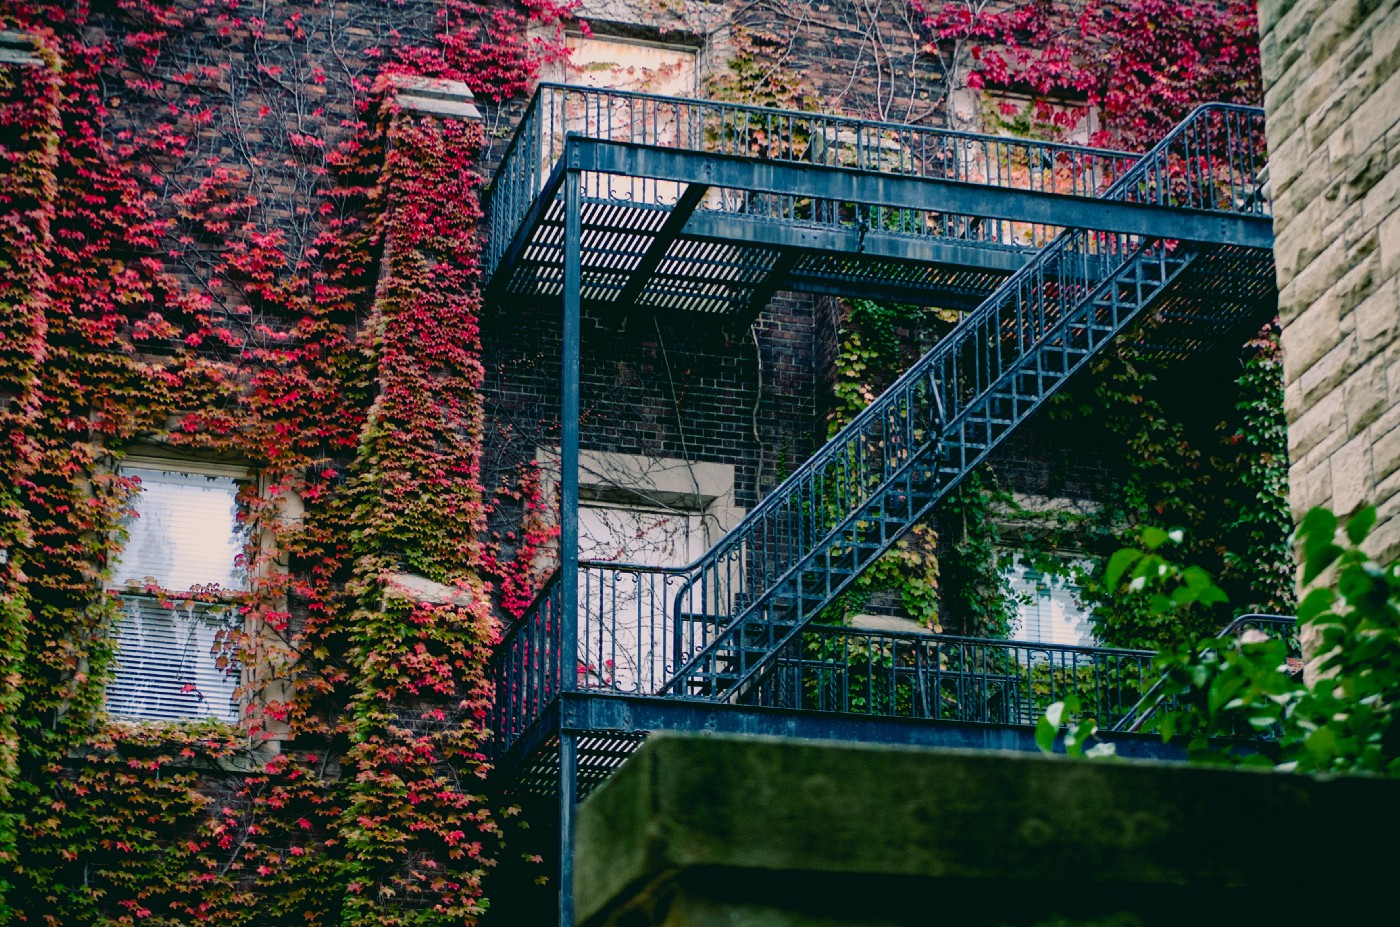 Apartment building with vines growing all over it.